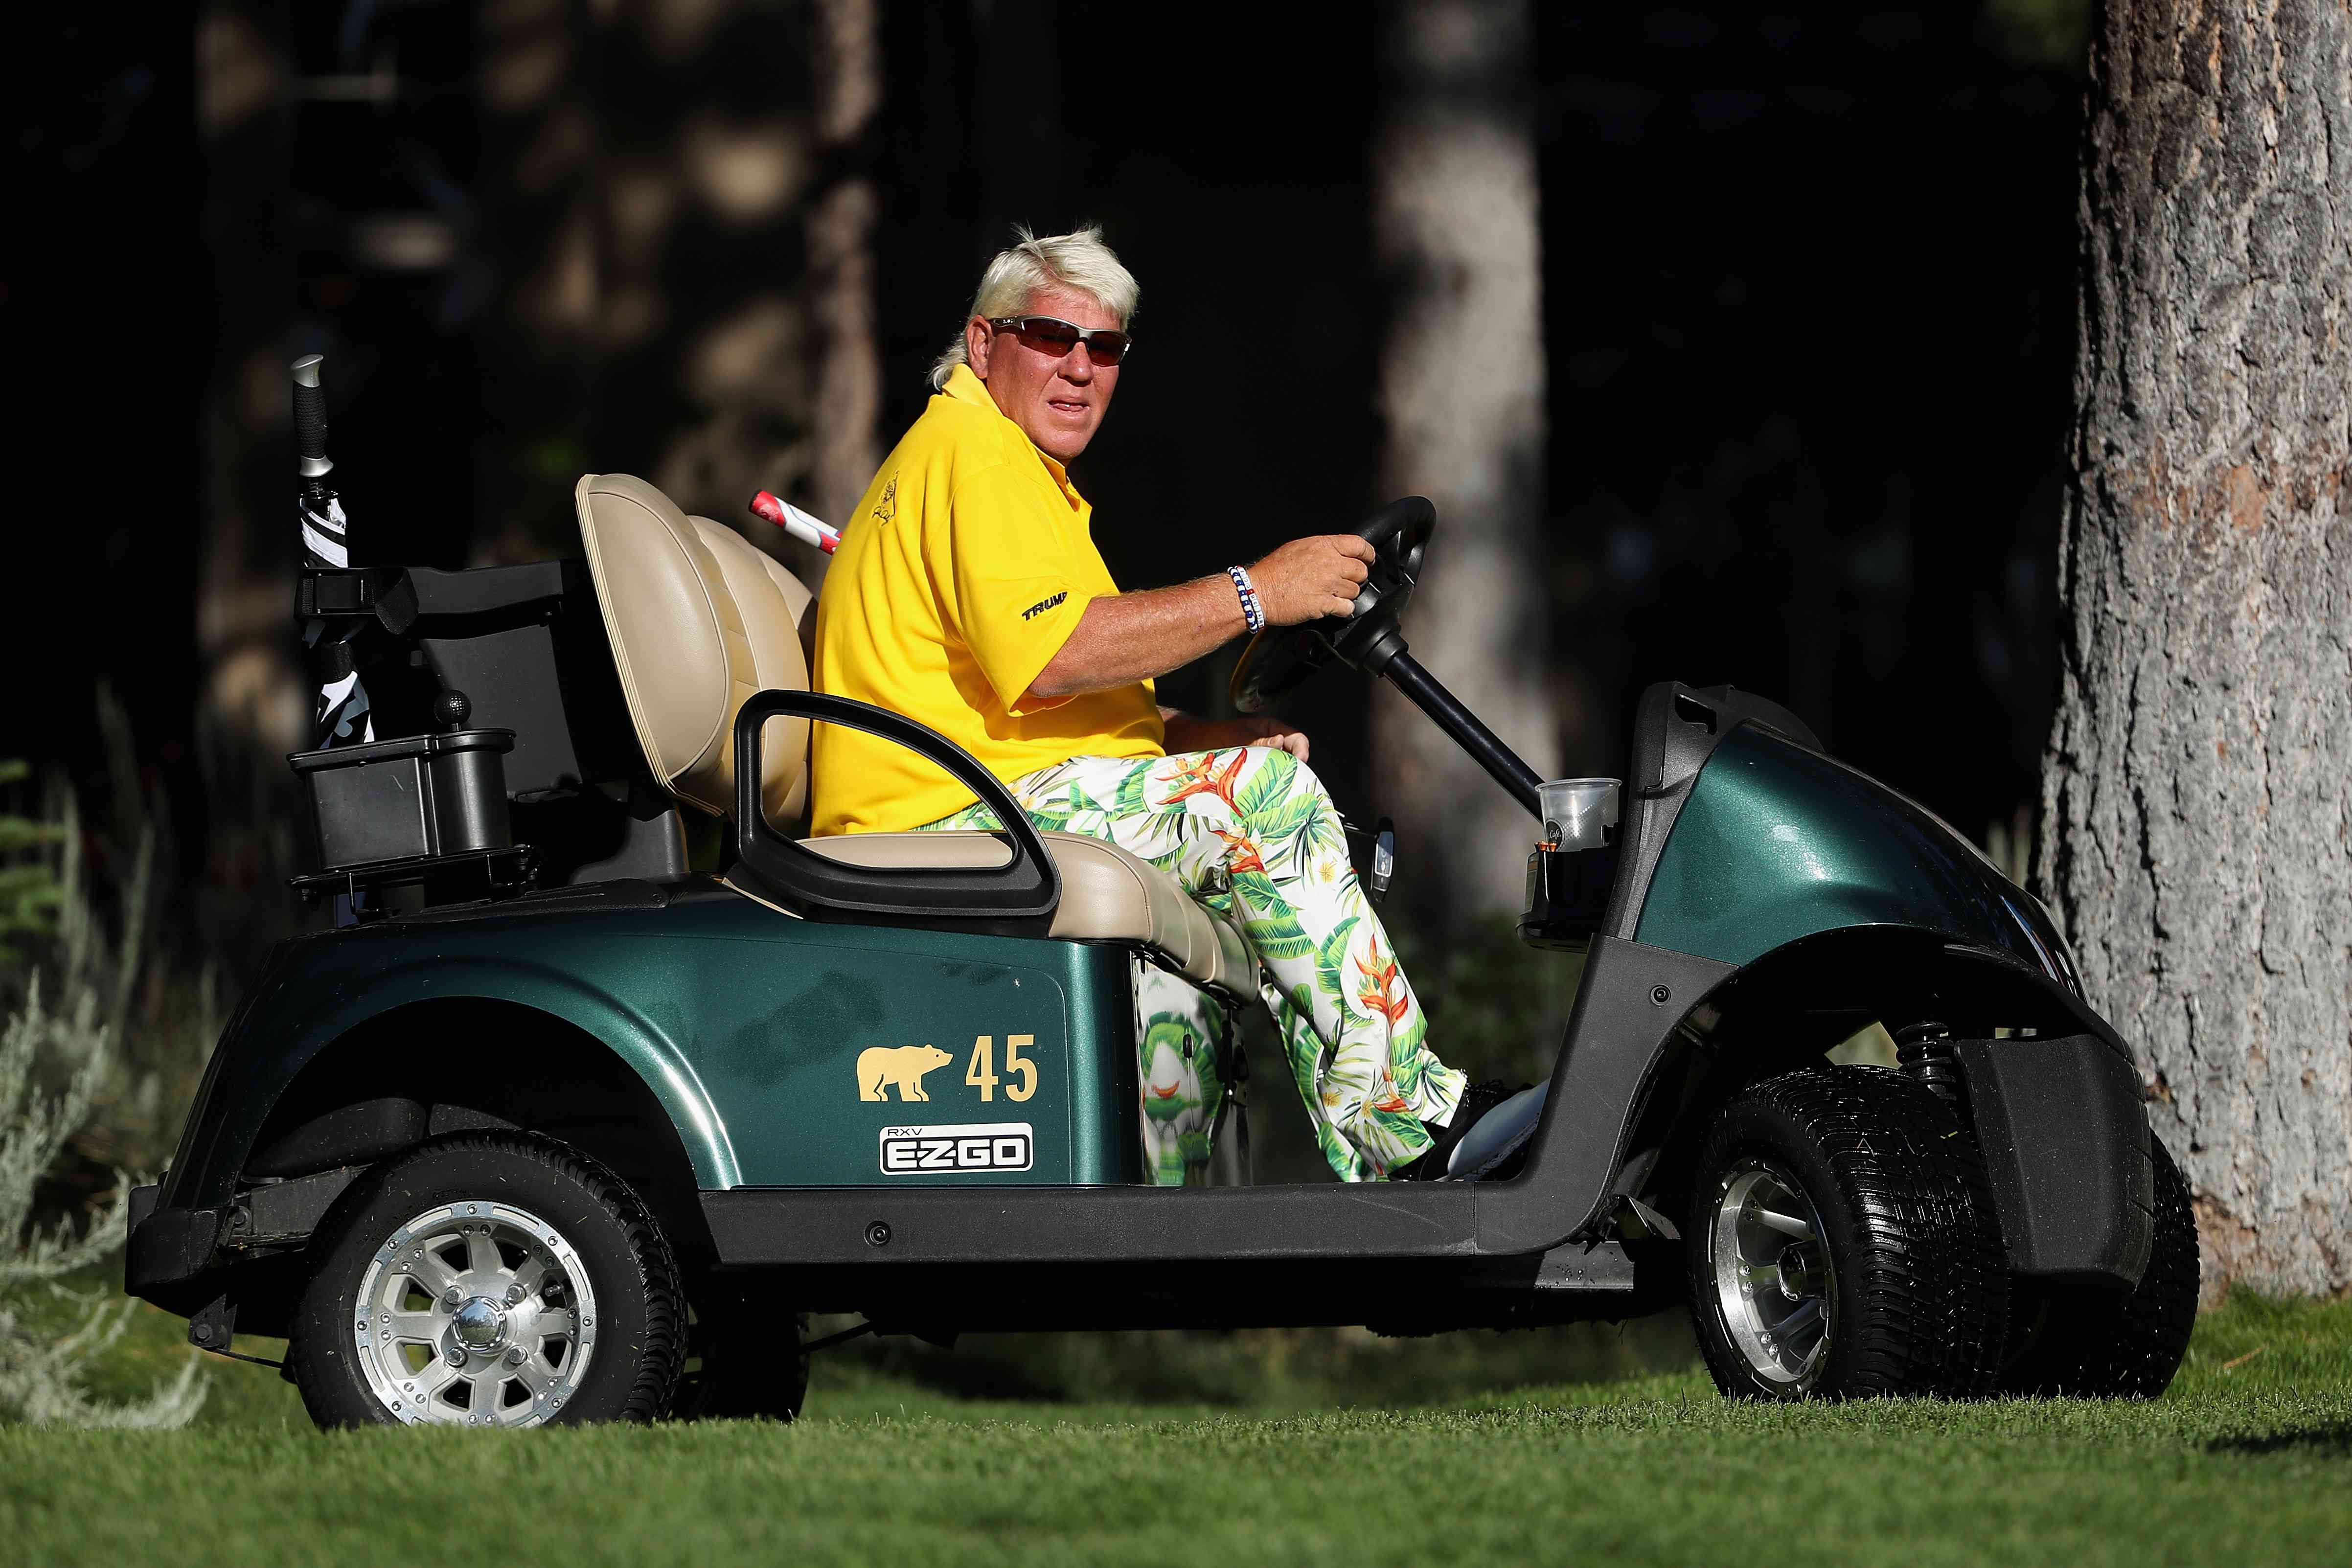 John Daly drives a cart up to the 16th tee during the continuation second round of the Barracuda Championship at Montreux Country Club on July 27, 2019 in Reno, Nevada.